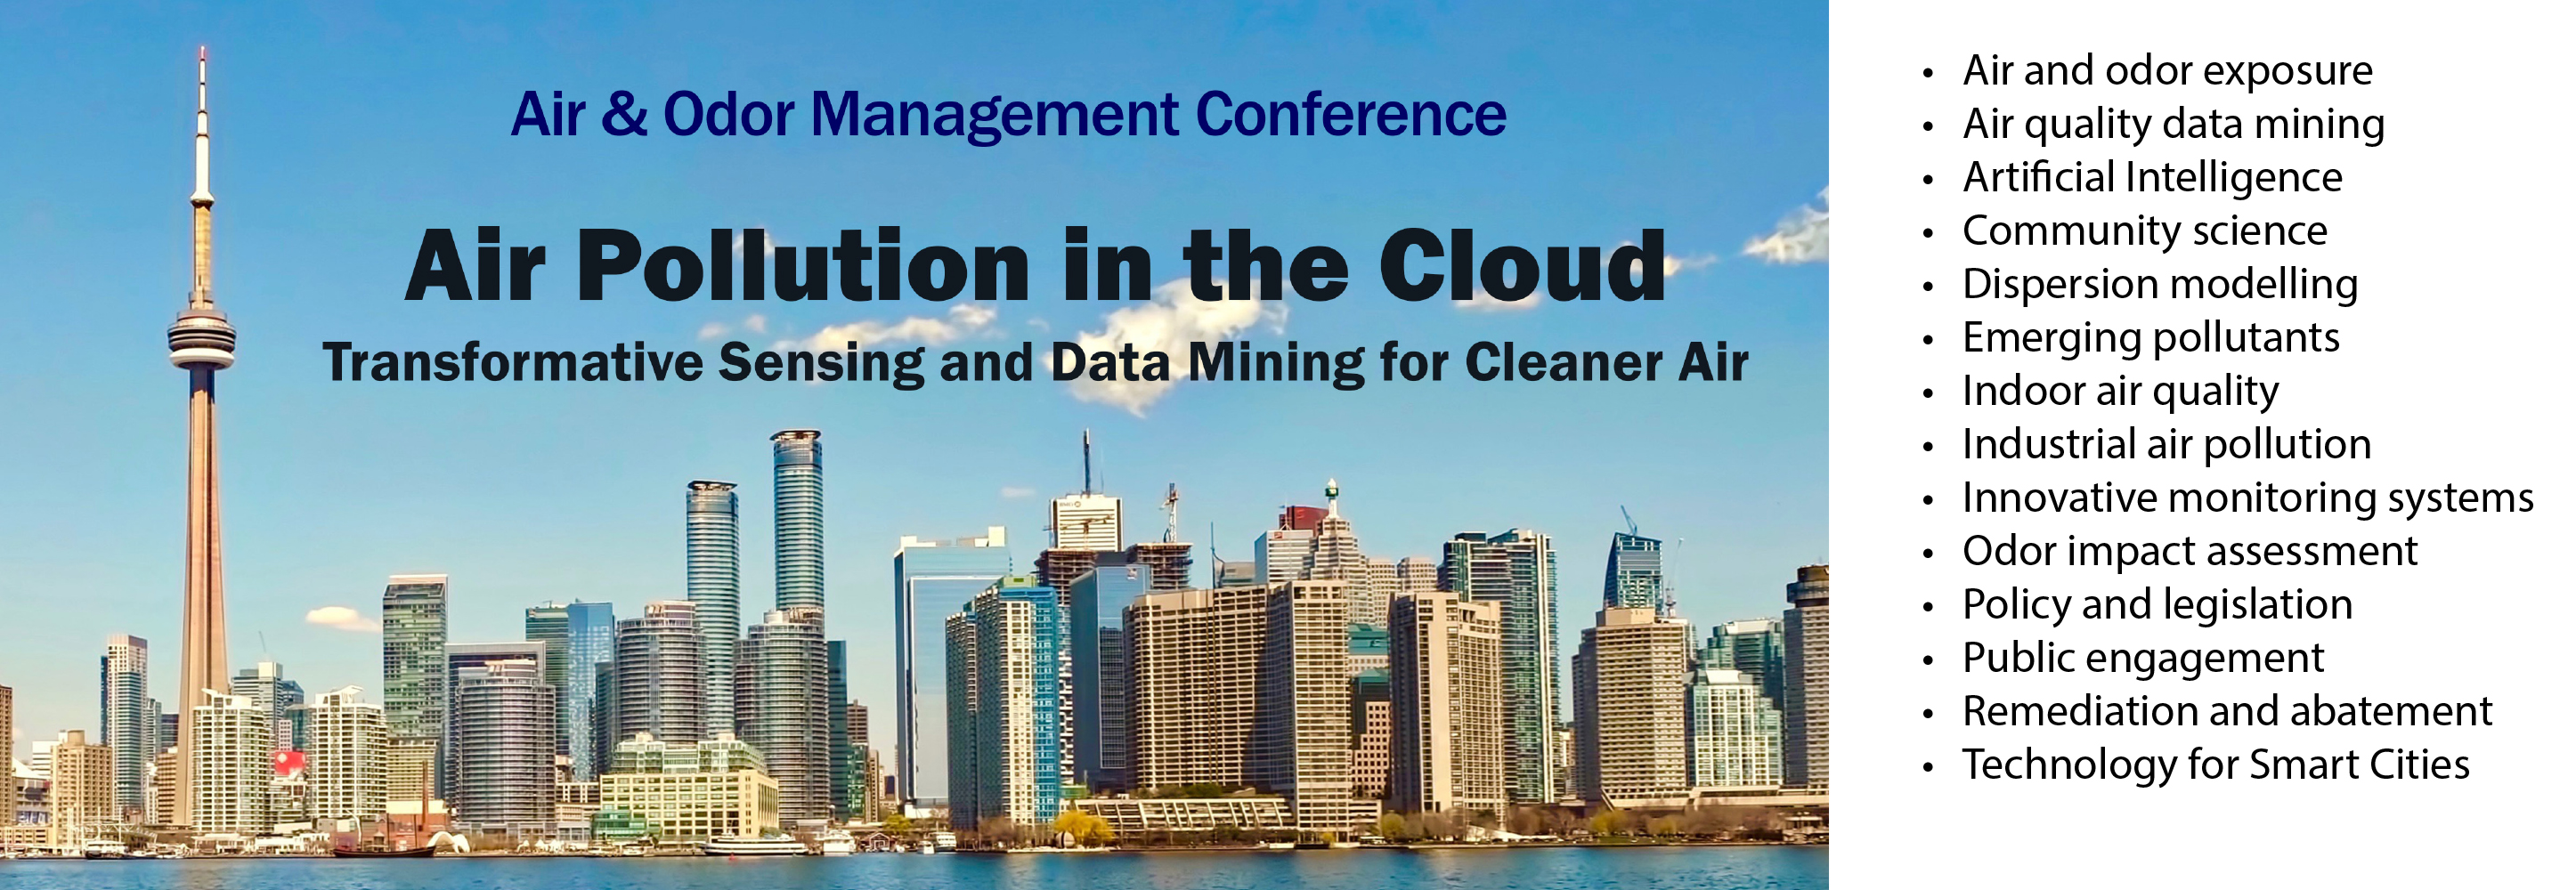 "Air and Odor Management Conference ""Air Pollution in the Cloud: Transformative Sensing and Data Mining for Cleaner Air"". Text set against photo of Toronto skyline. A list of topics at side."